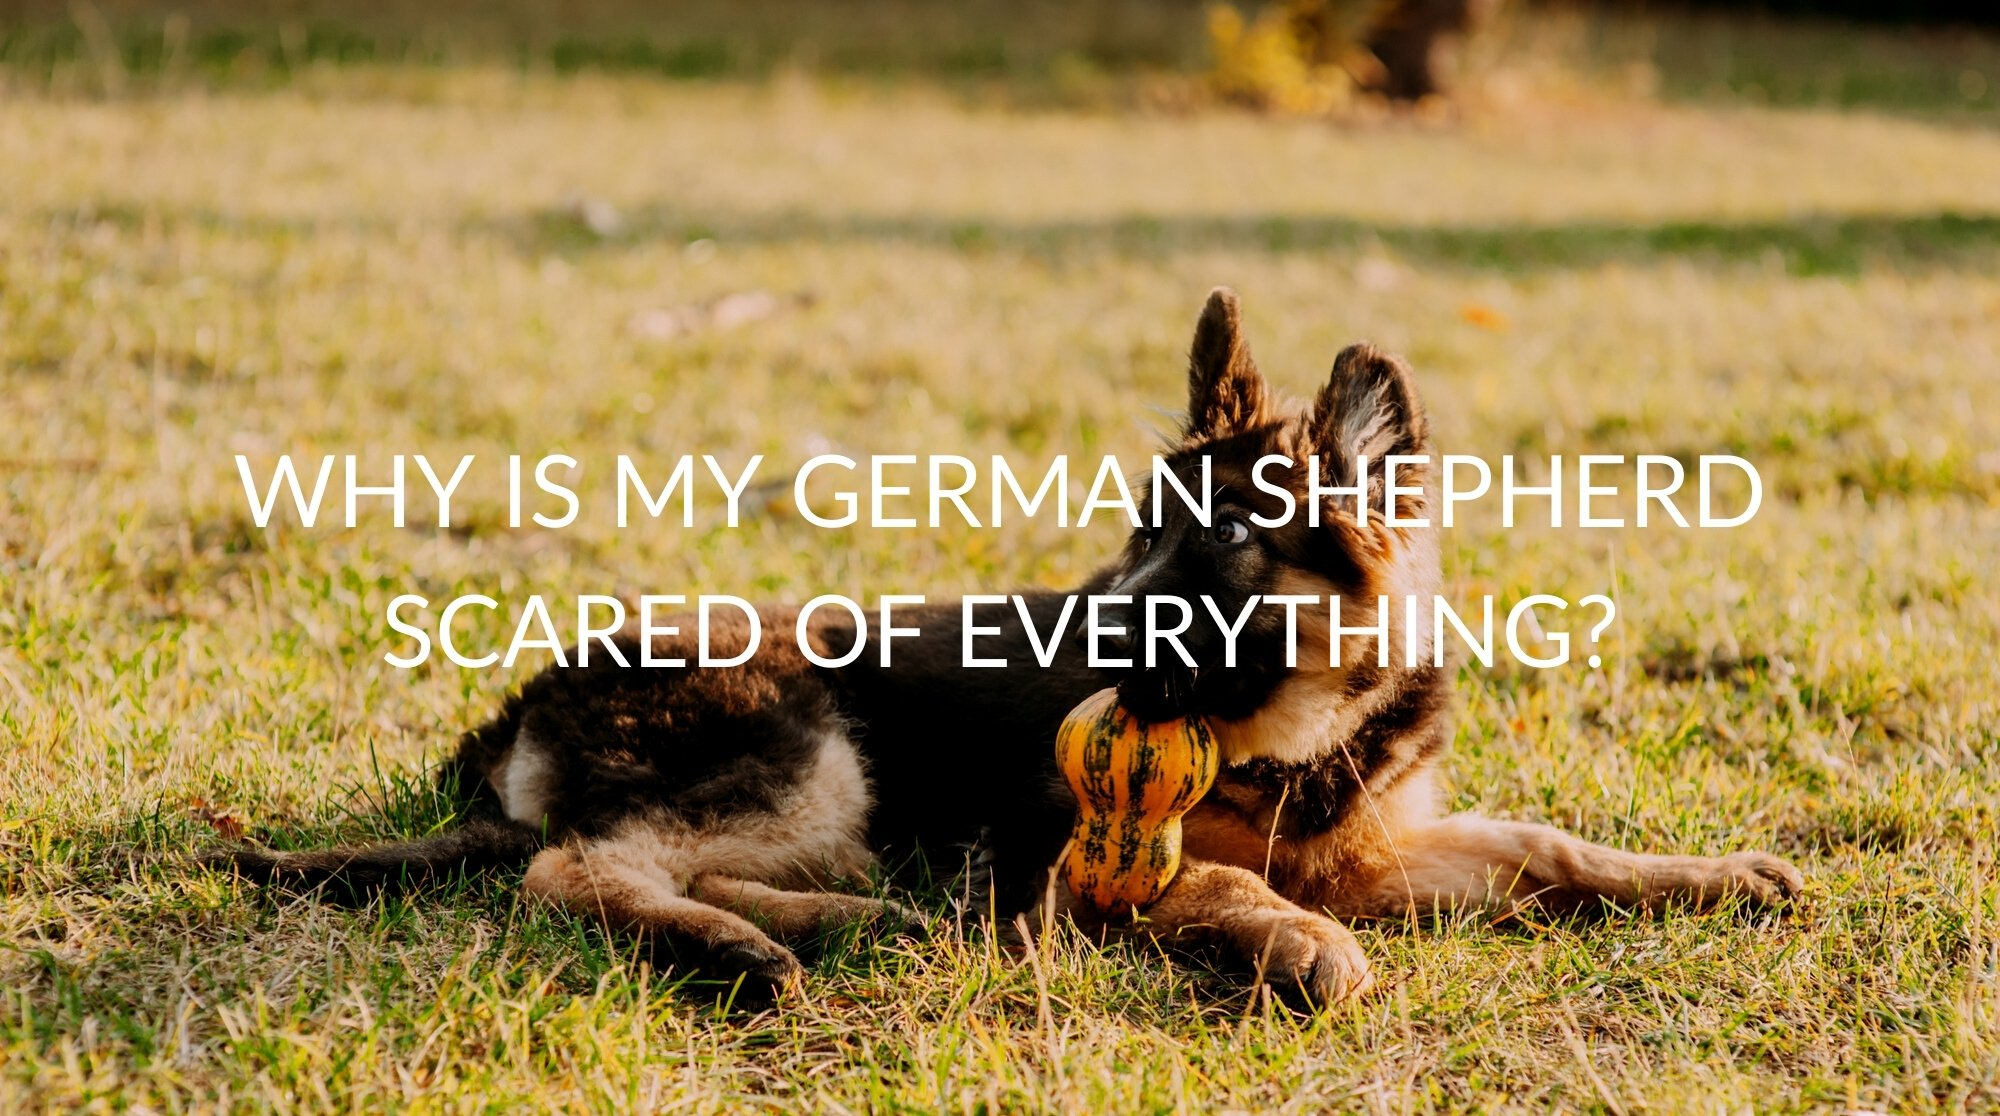 Why Is My German Shepherd Scared Of Everything?